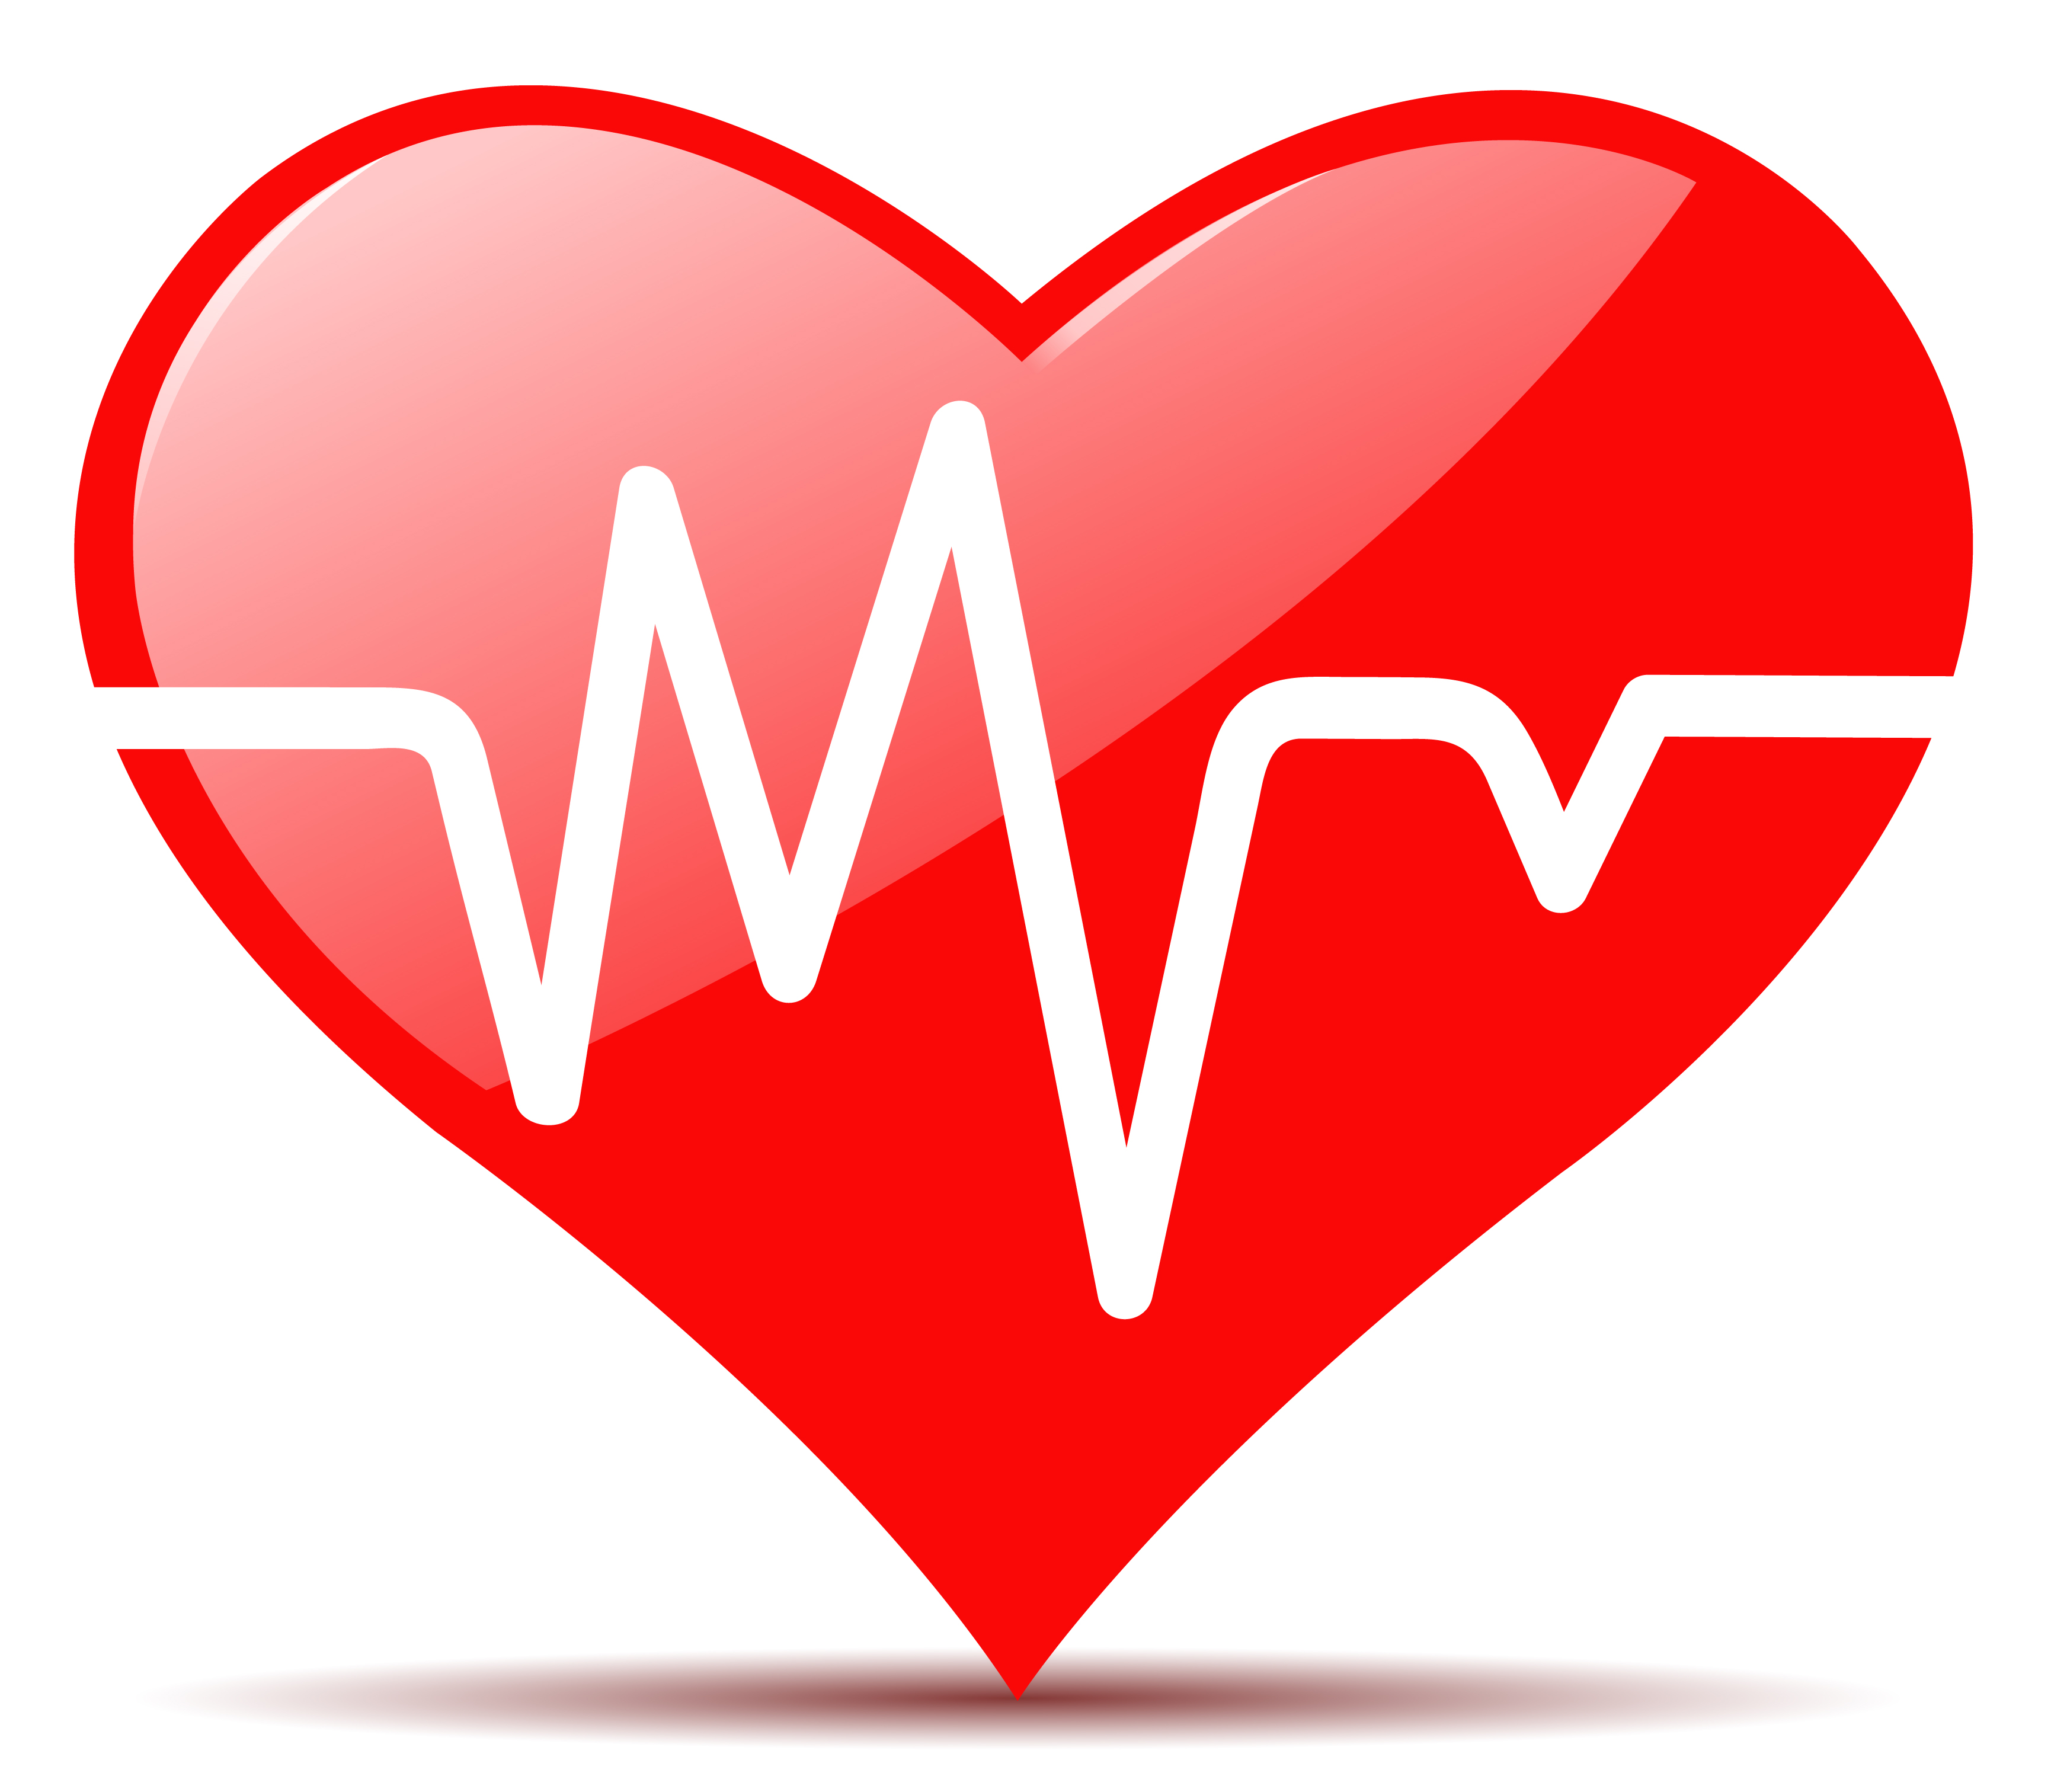 Top 7 Reasons For Cardiologists To Implement Cardiology